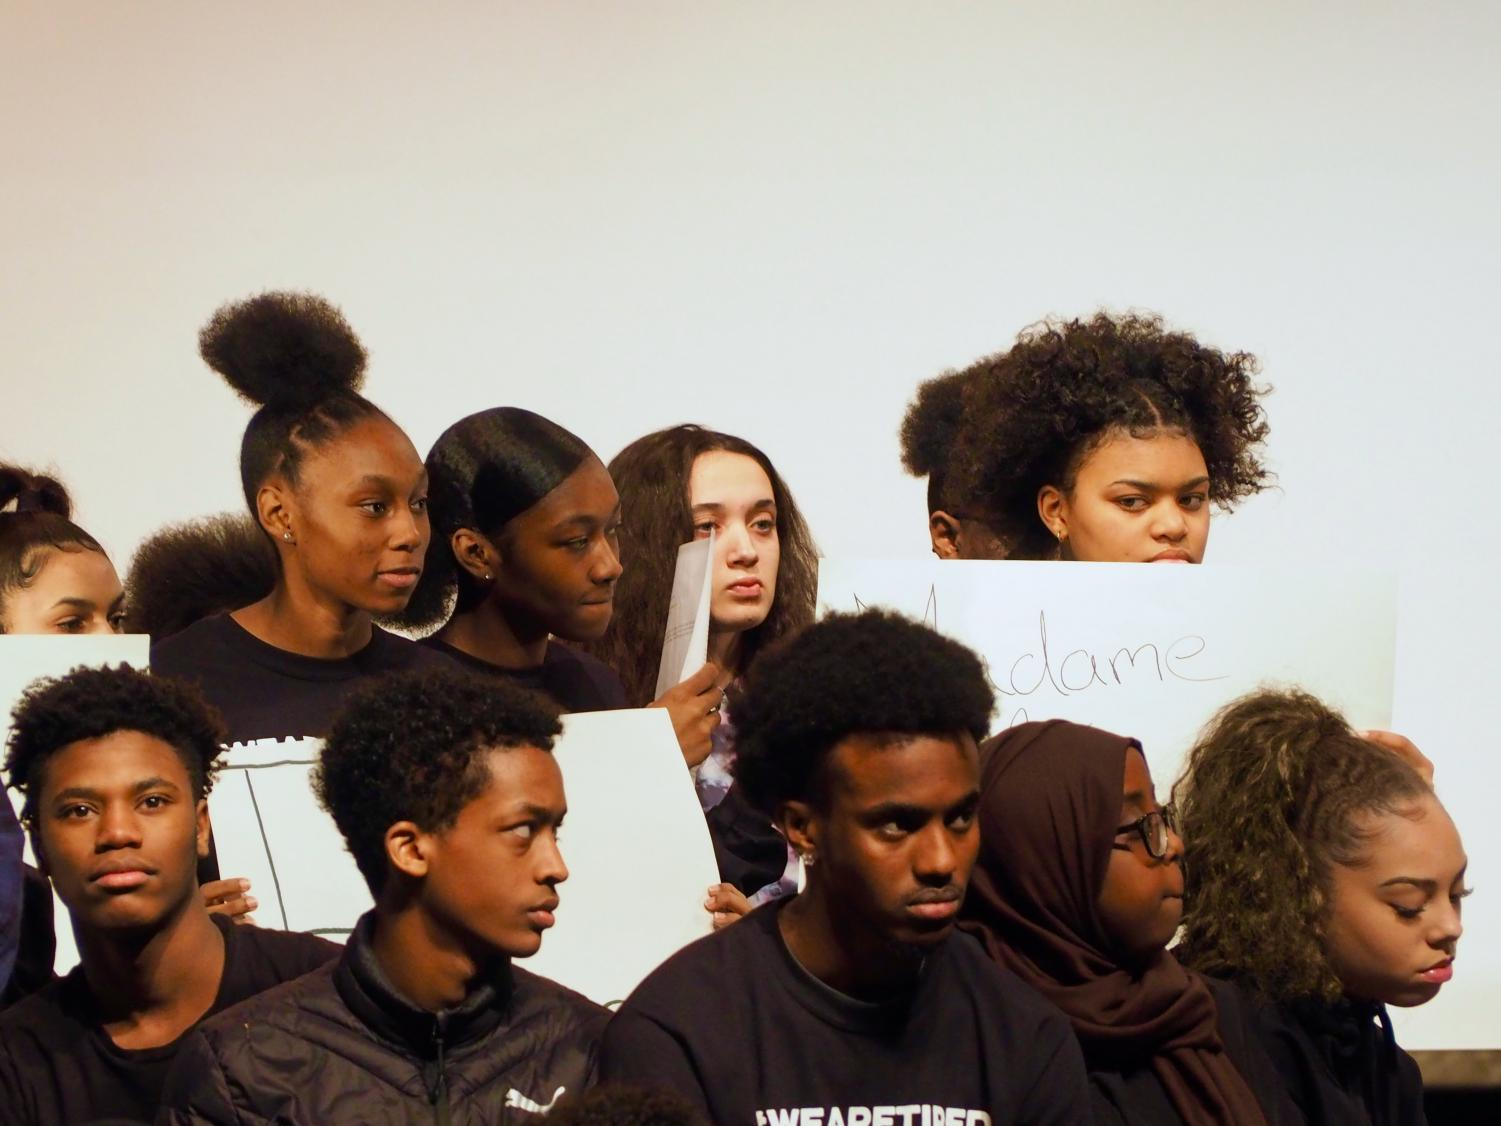 Students listen to a speaker for the Black History Month presentation March 8. The presentation proved that very little change has been made in the treatment of people of color. Last year's presentation was based on black history not starting with slavery which is what most schools teach.